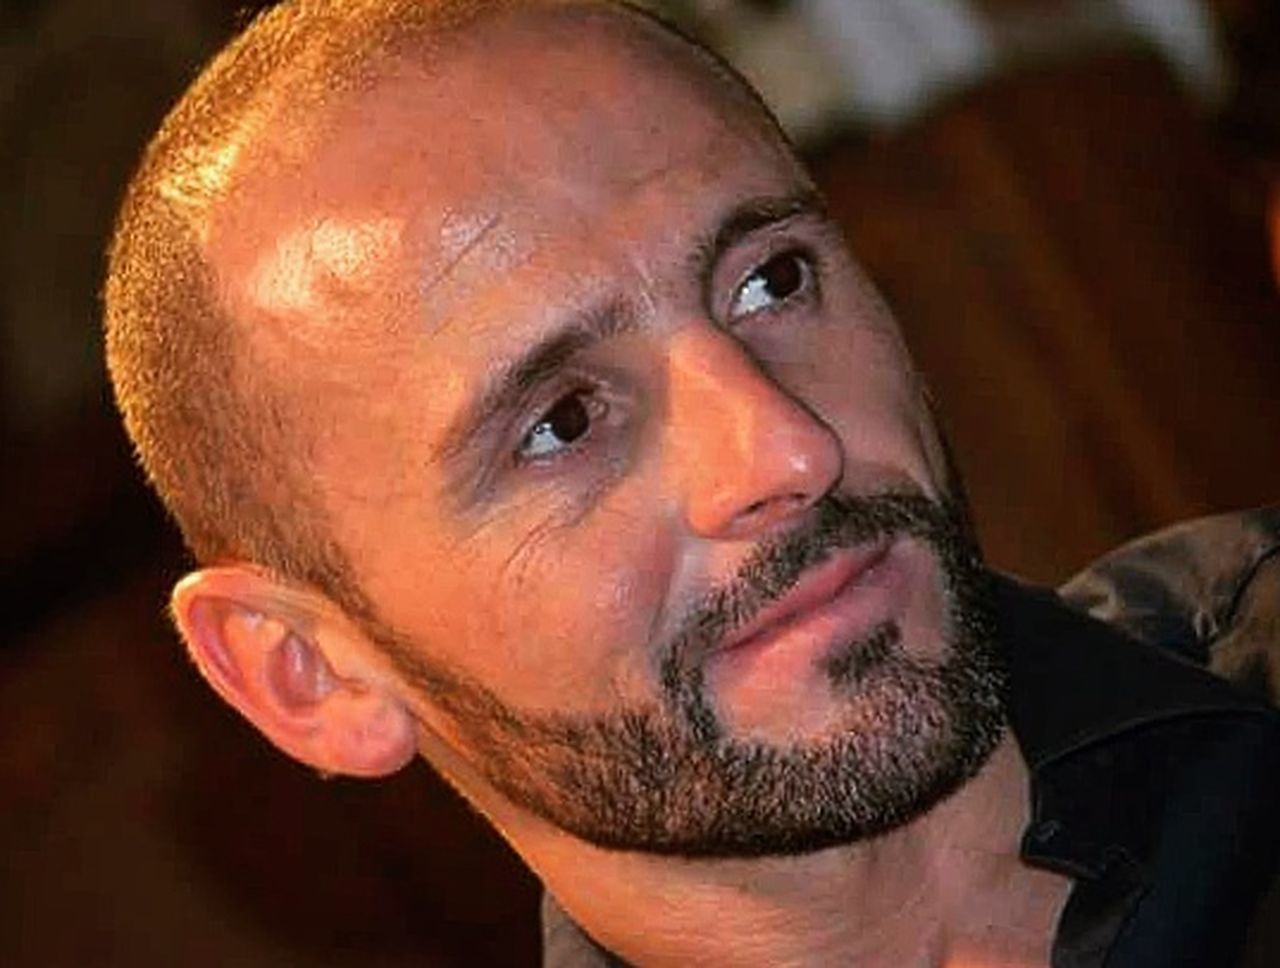 only men, beard, one man only, headshot, portrait, adults only, one person, mid adult, adult, hair loss, close-up, looking at camera, indoors, people, mature adult, human face, mustache, shaved head, men, human body part, day